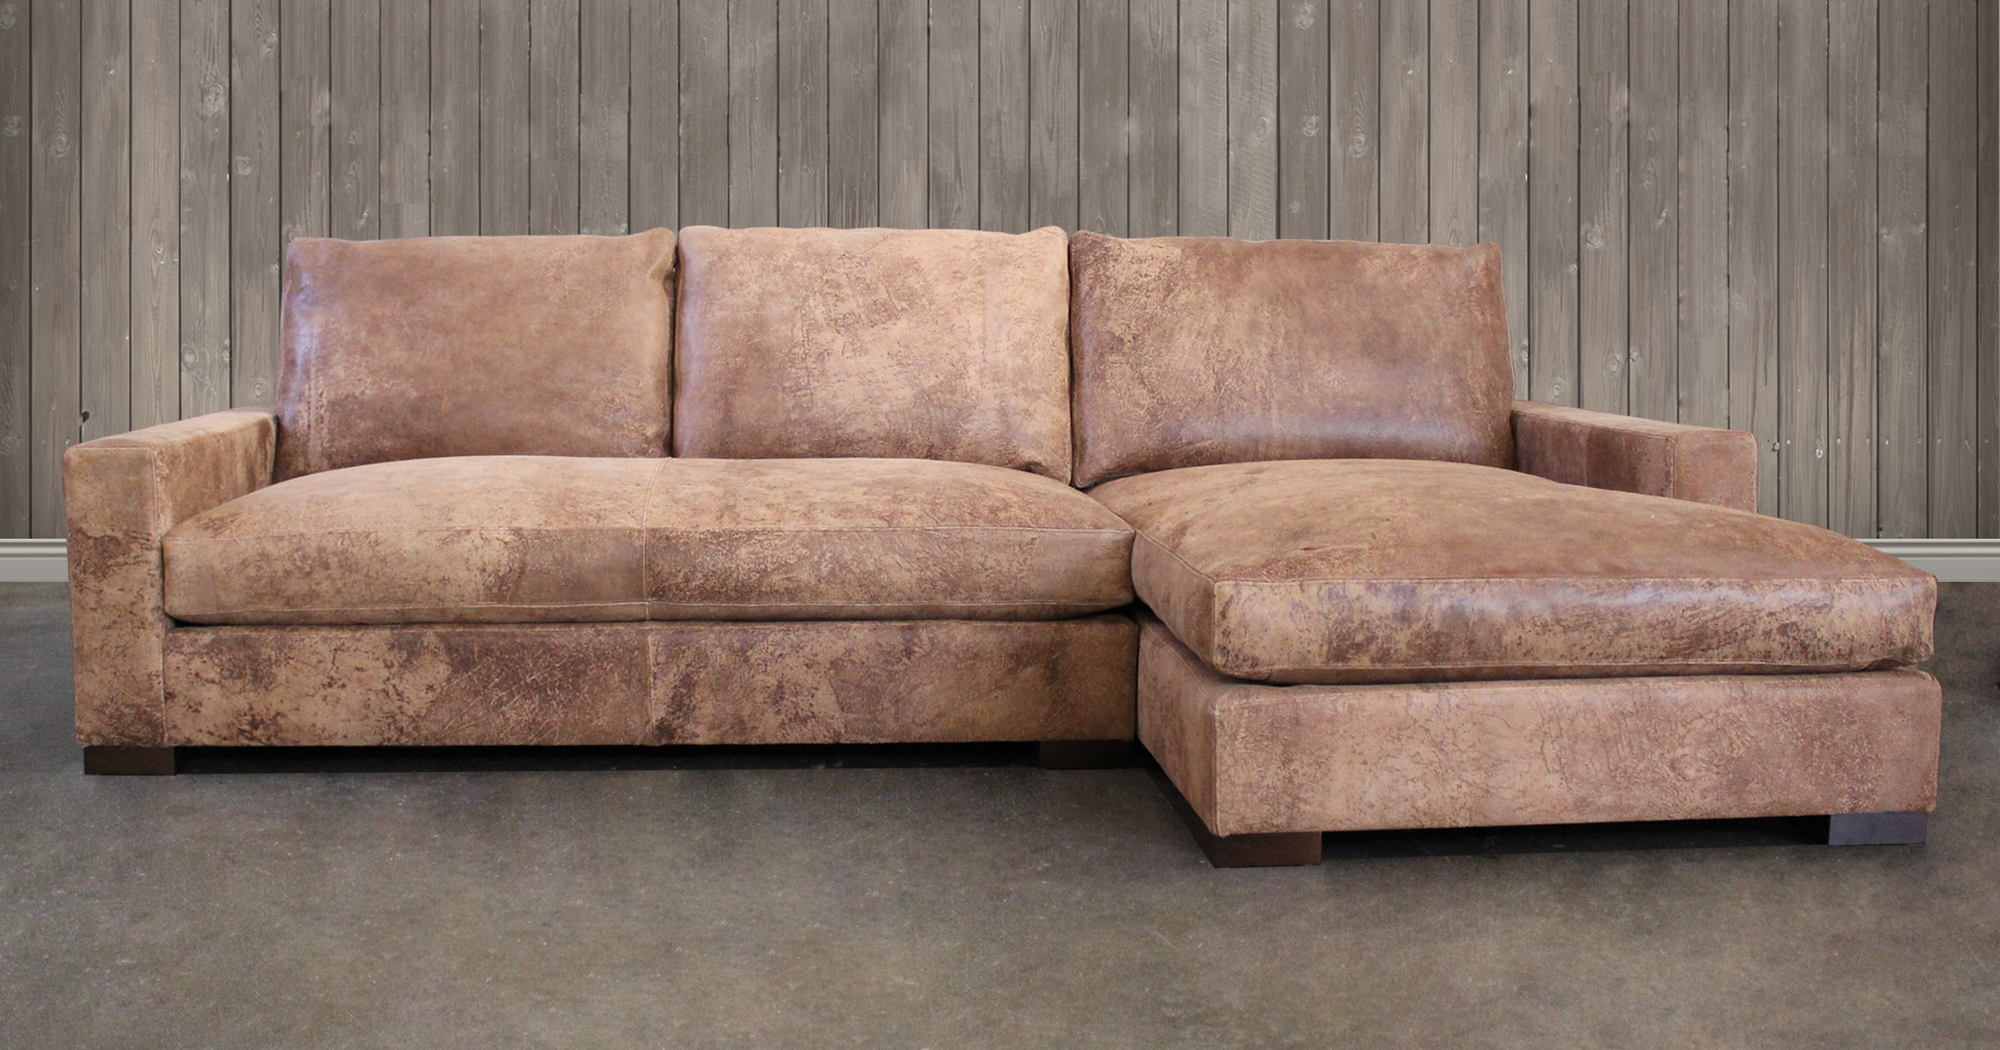 american made leather furniture leather sofas leather chairs rh leathergroups com american made leather sofa sectionals american made leather sofa sectionals